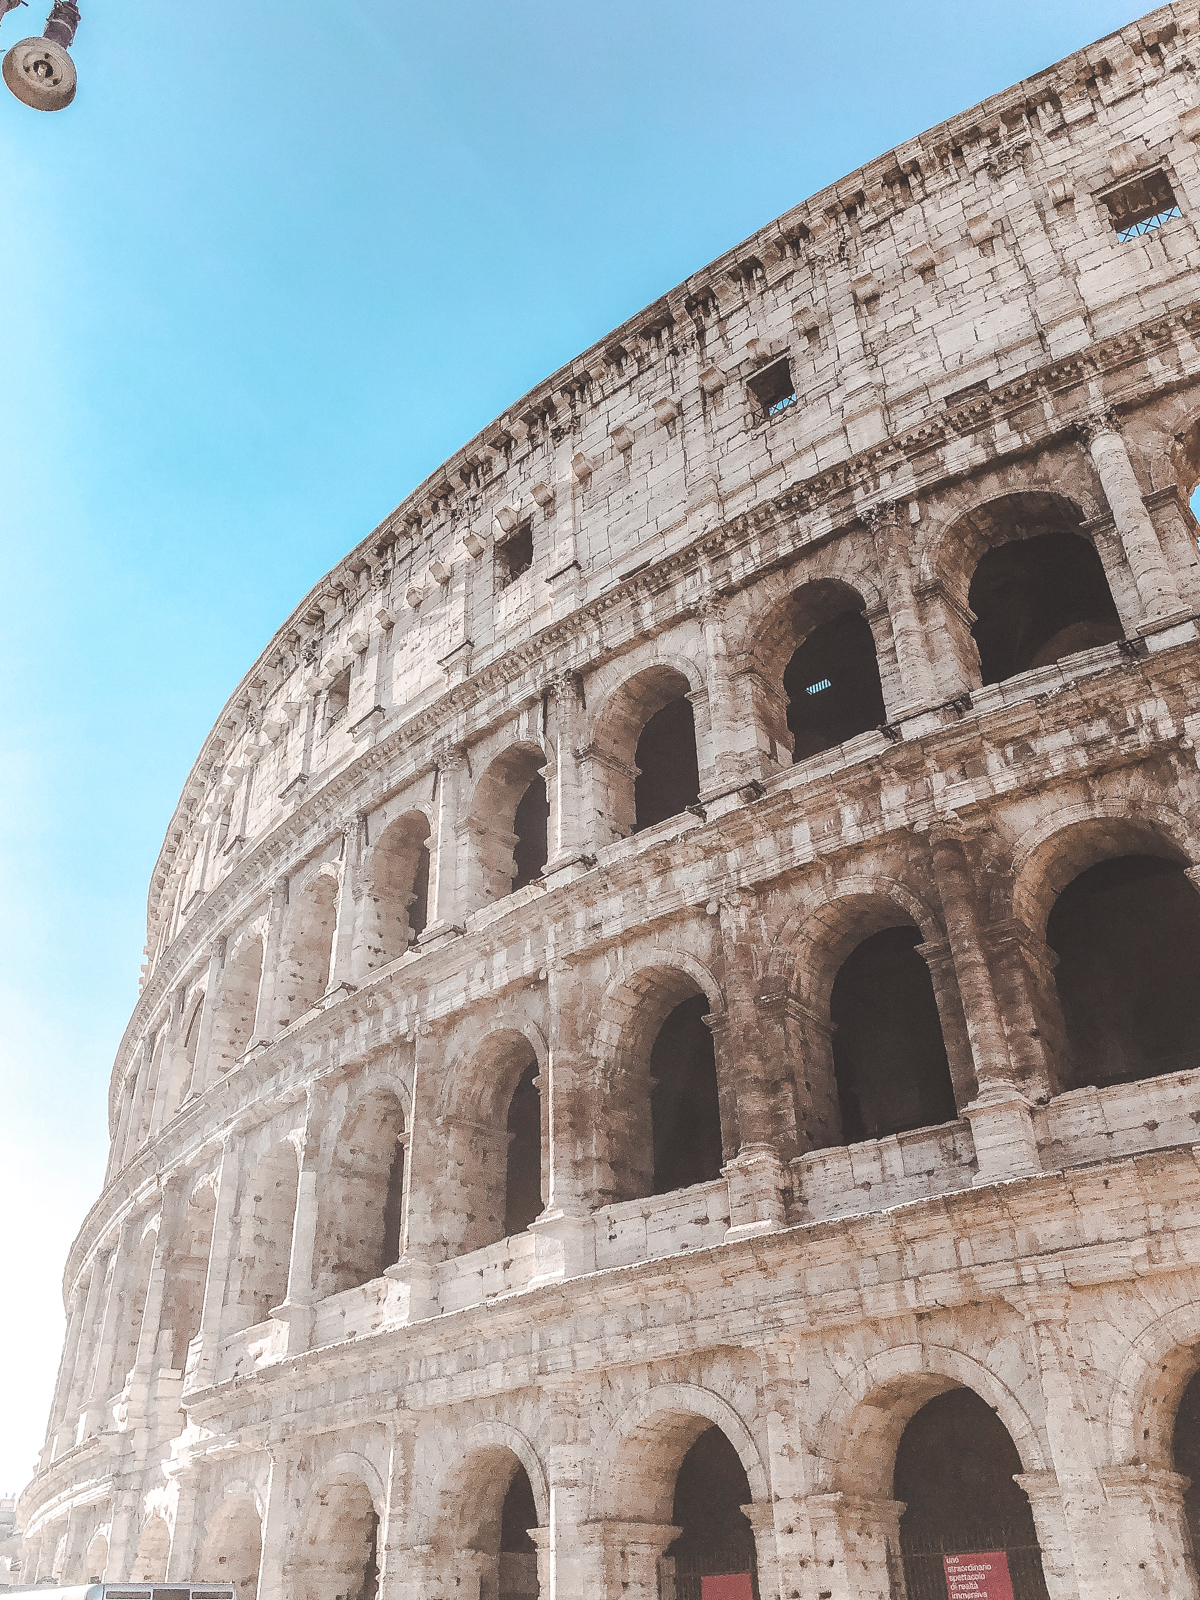 a shot from below the Roman Colosseum